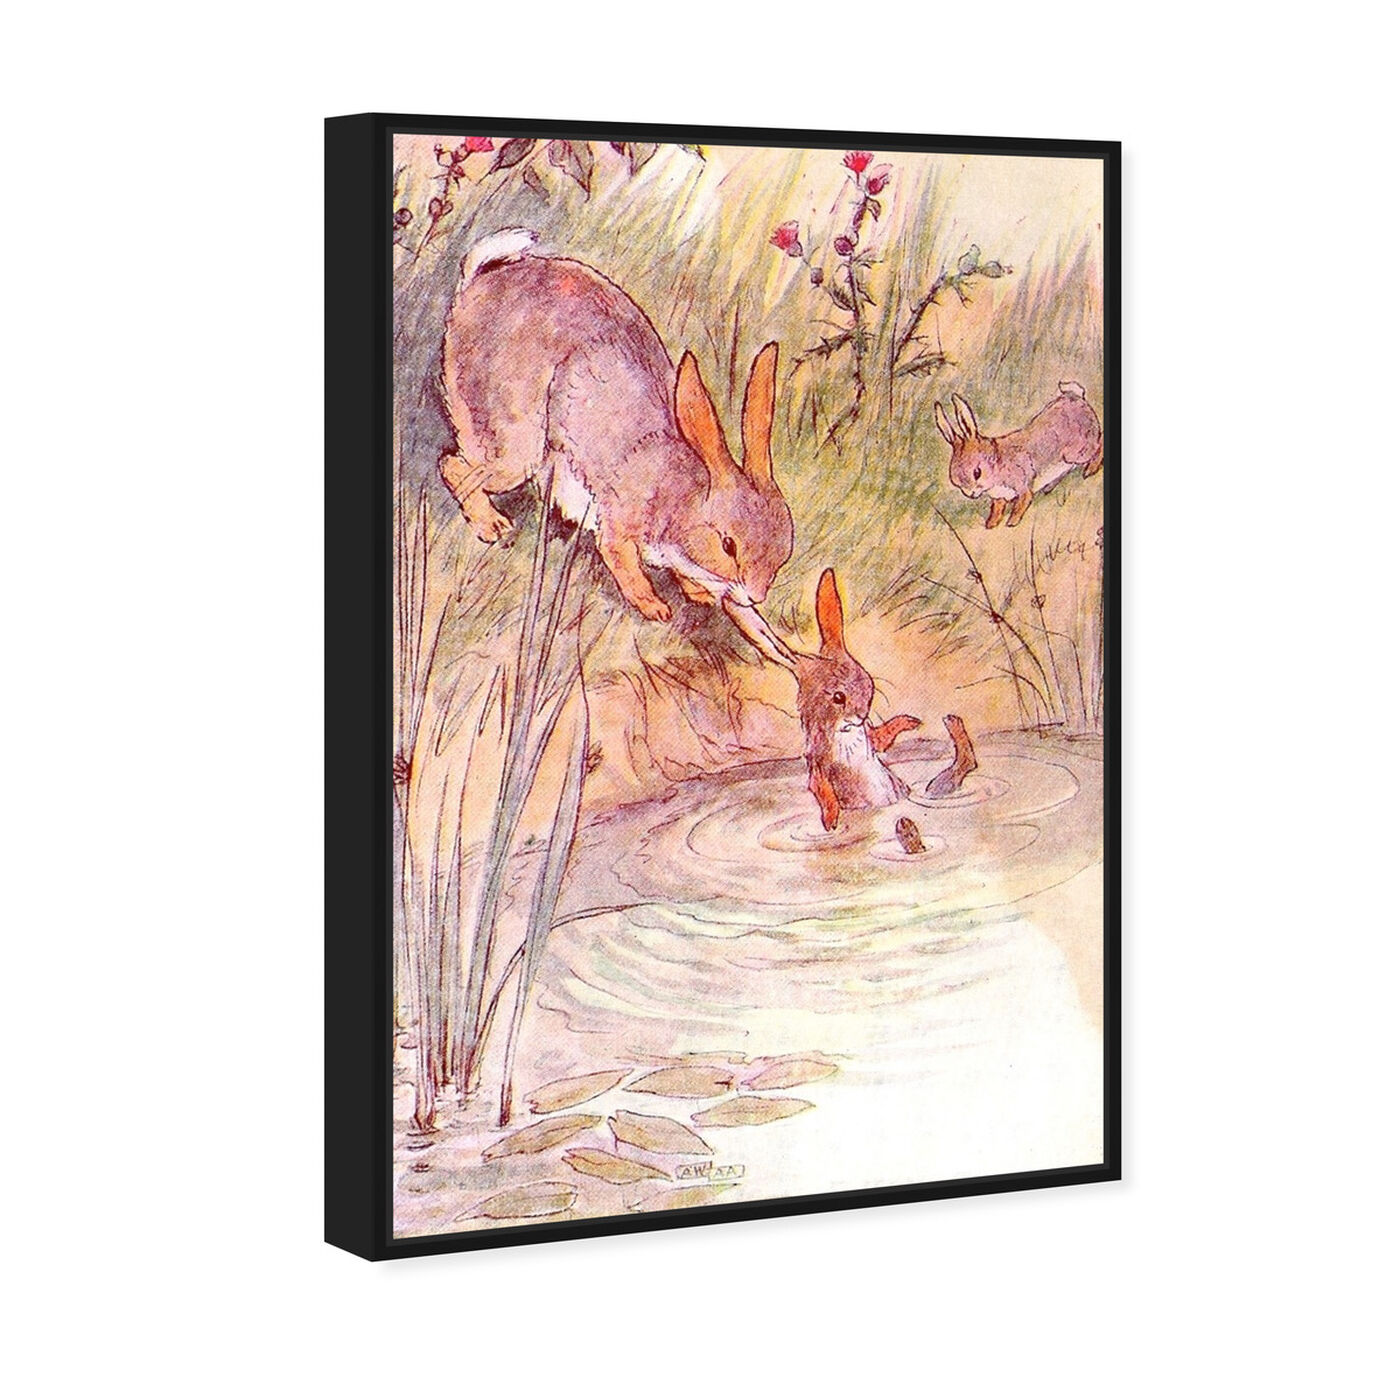 Angled view of Bunny Fell in the Pond featuring animals and farm animals art.